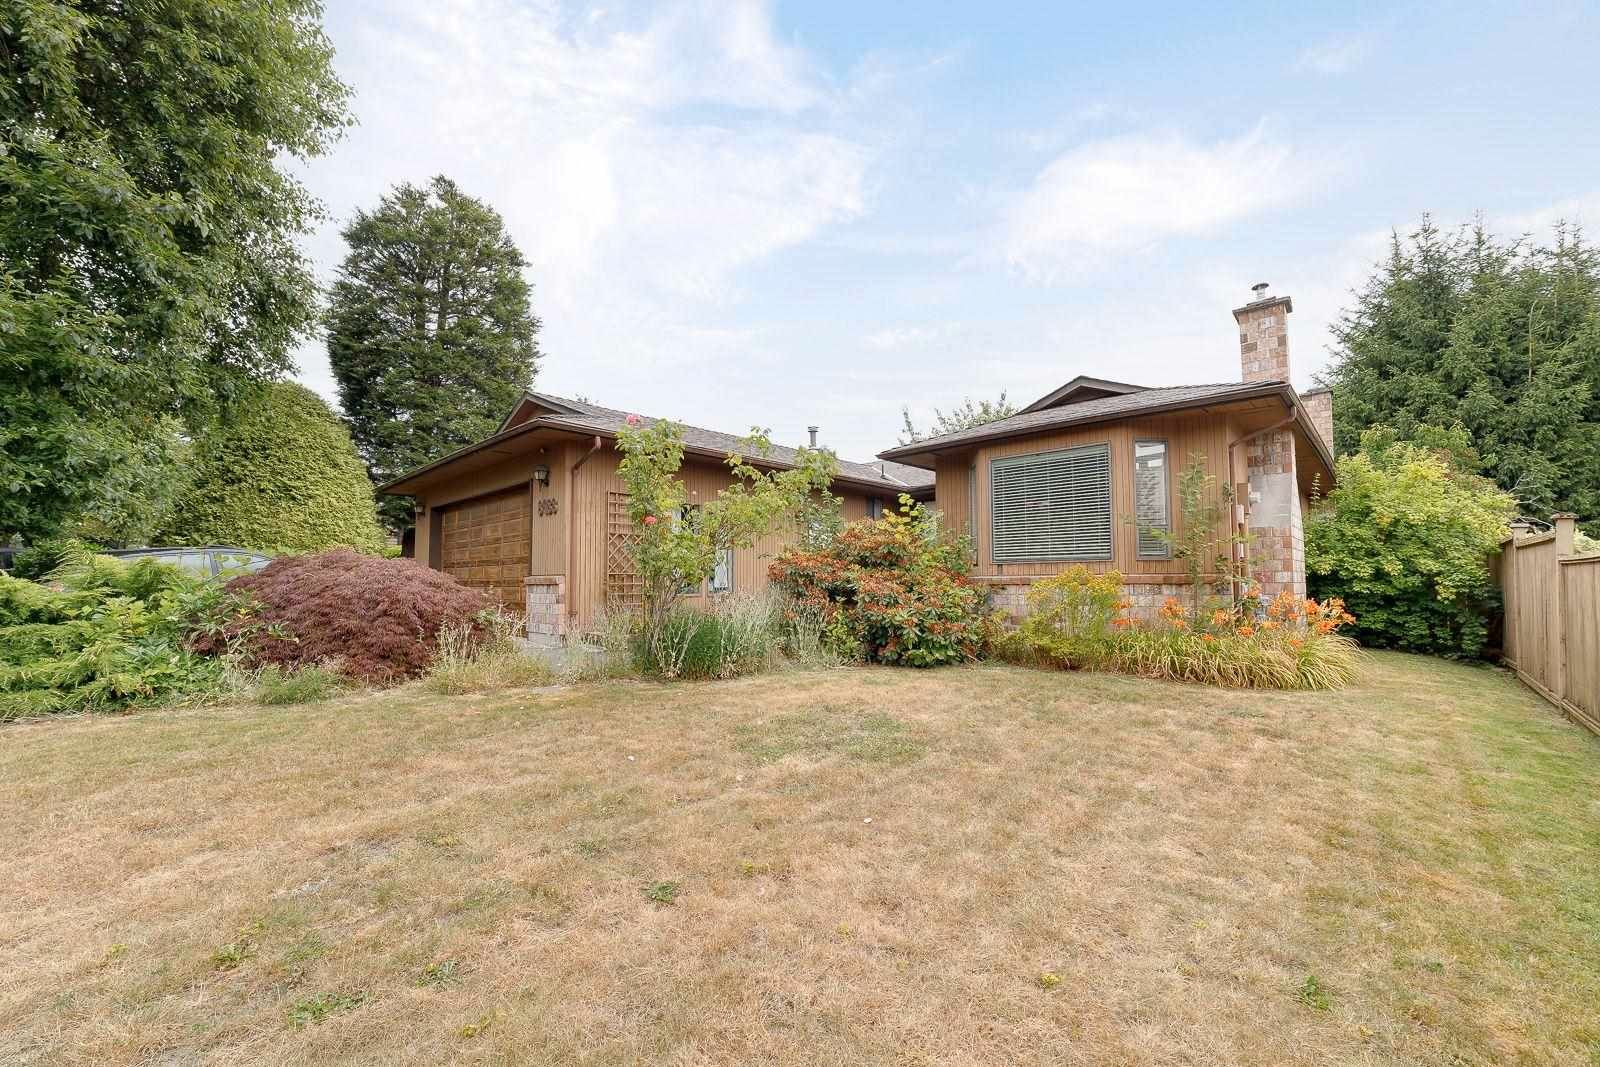 Main Photo: 8488 151A Street in Surrey: Bear Creek Green Timbers House for sale : MLS®# R2600033